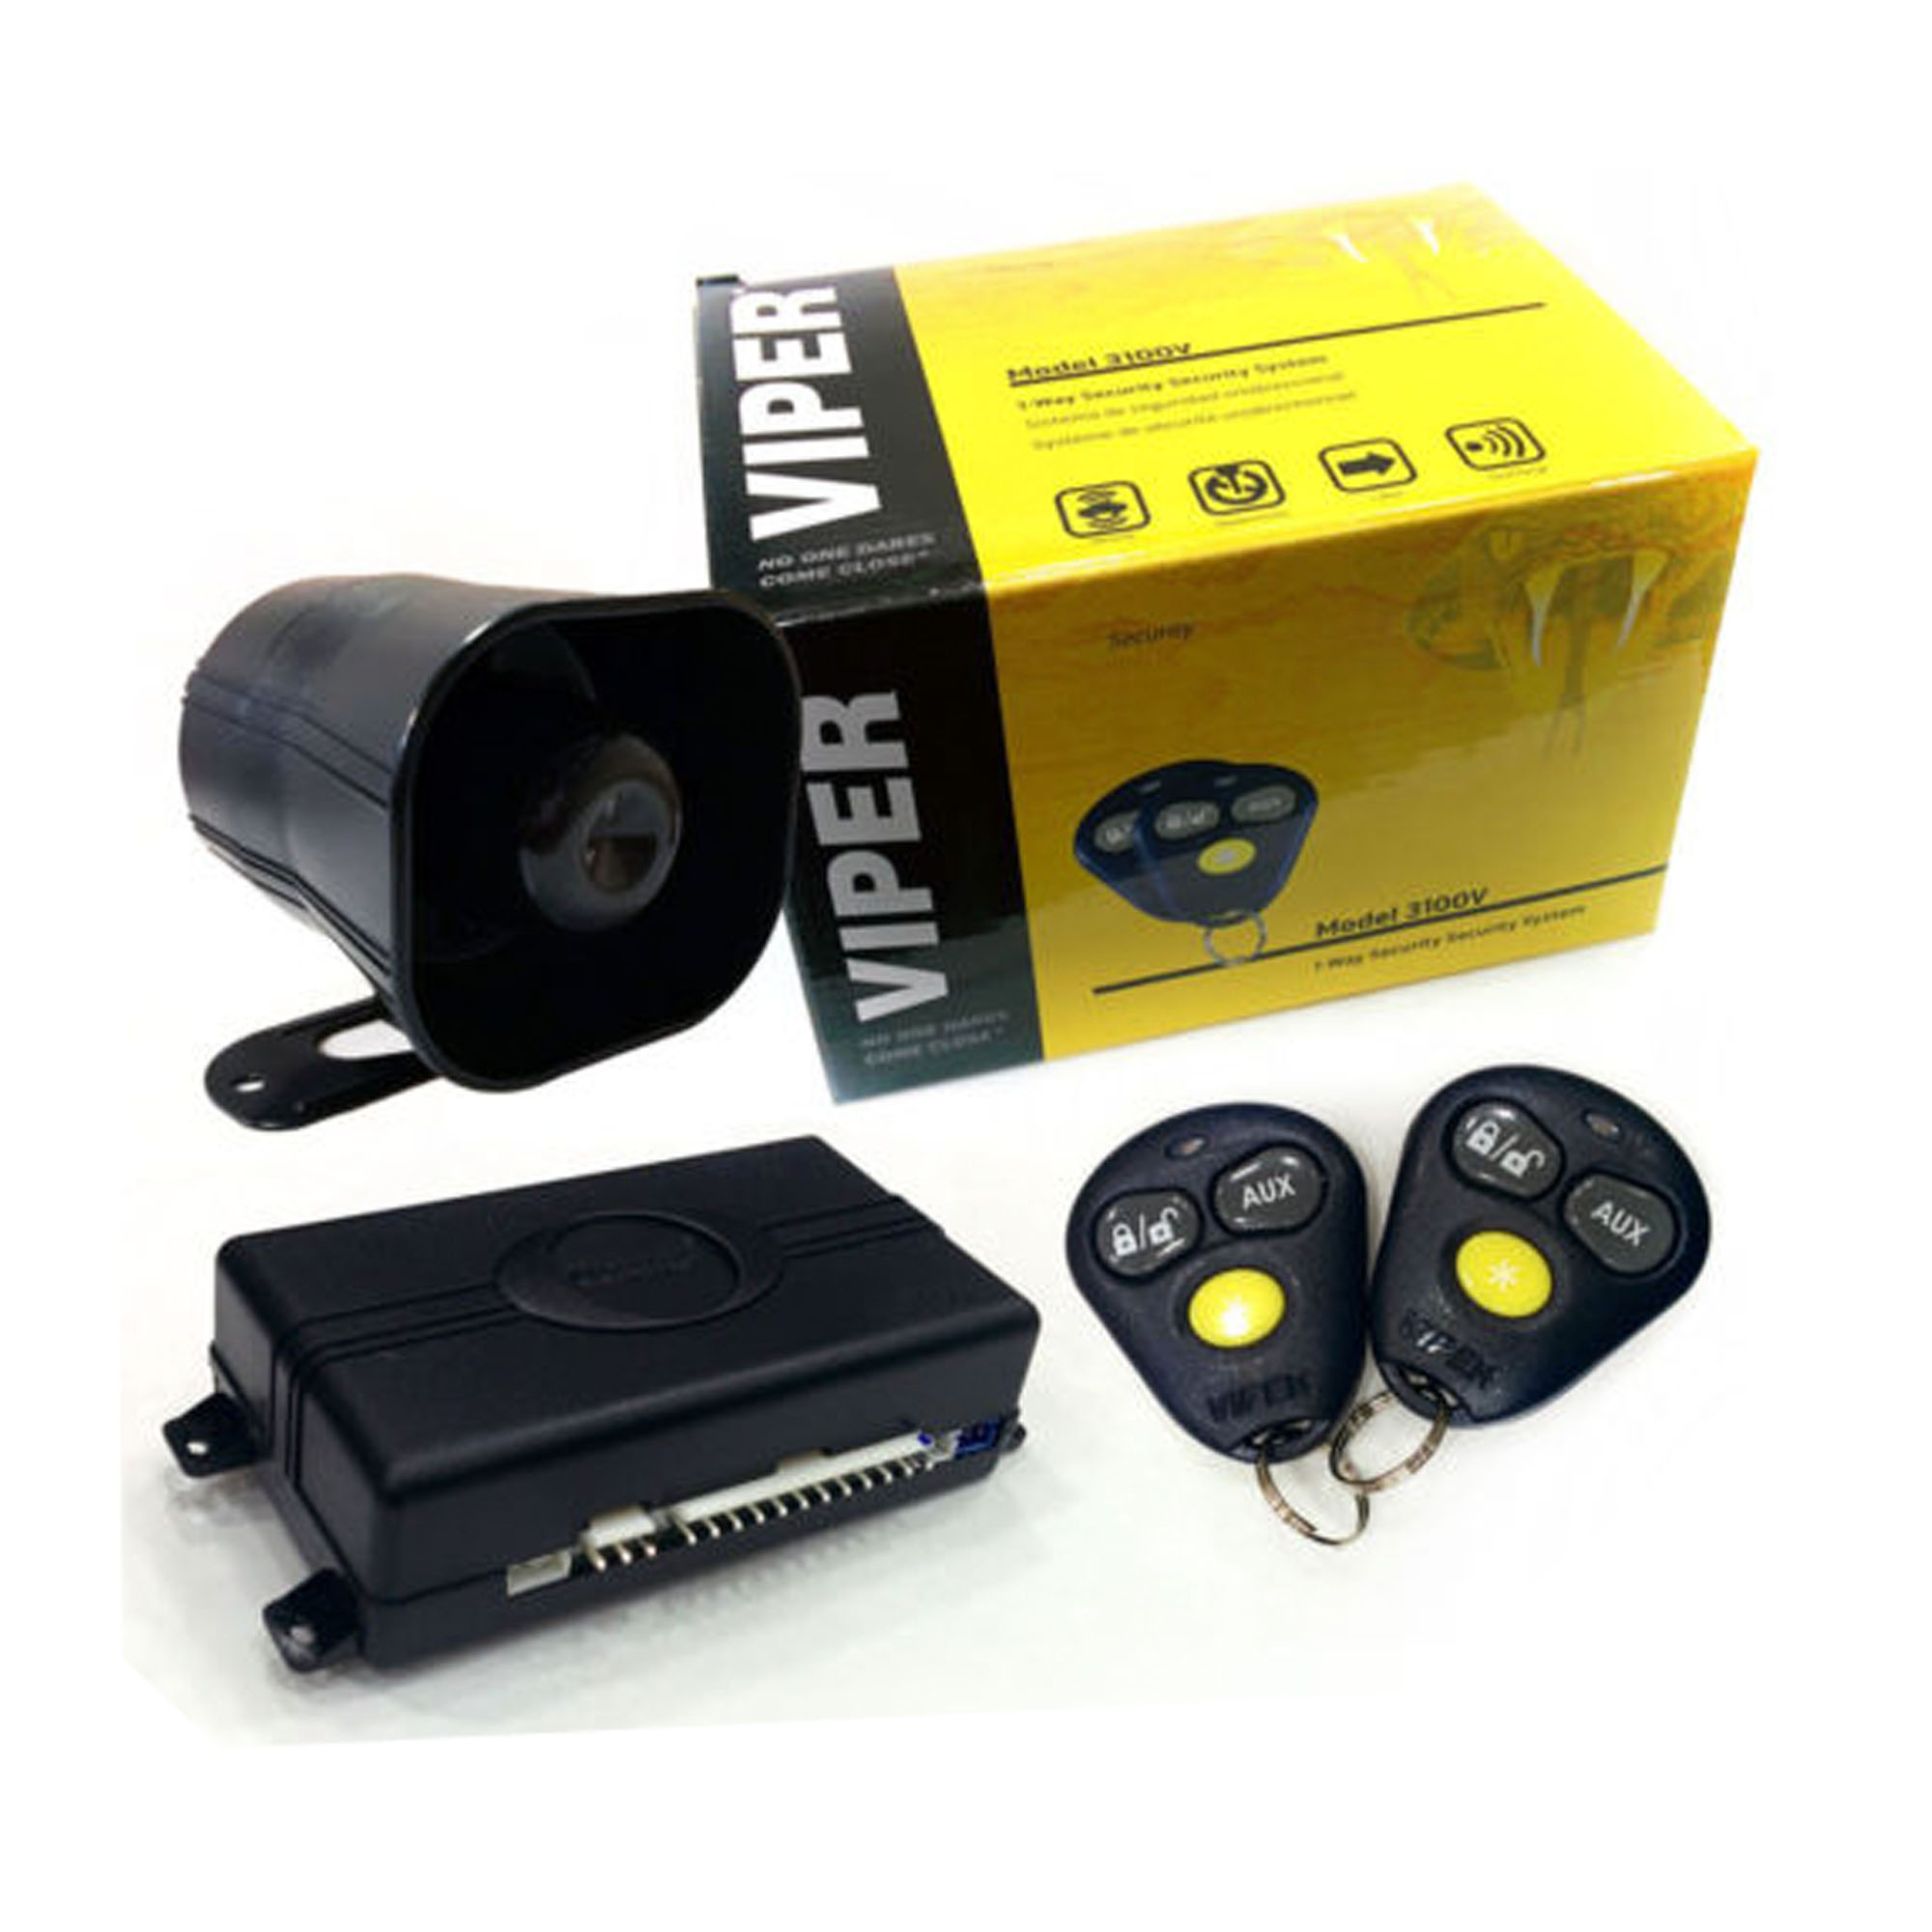 Details about VIPER 3 CHANNEL 1-WAY VEHICLE SECURITY KEYLESS ENTRY on viper tires, viper seats, viper interior, viper tools, viper chassis, viper antenna, viper exhaust, viper electrical, viper blue,